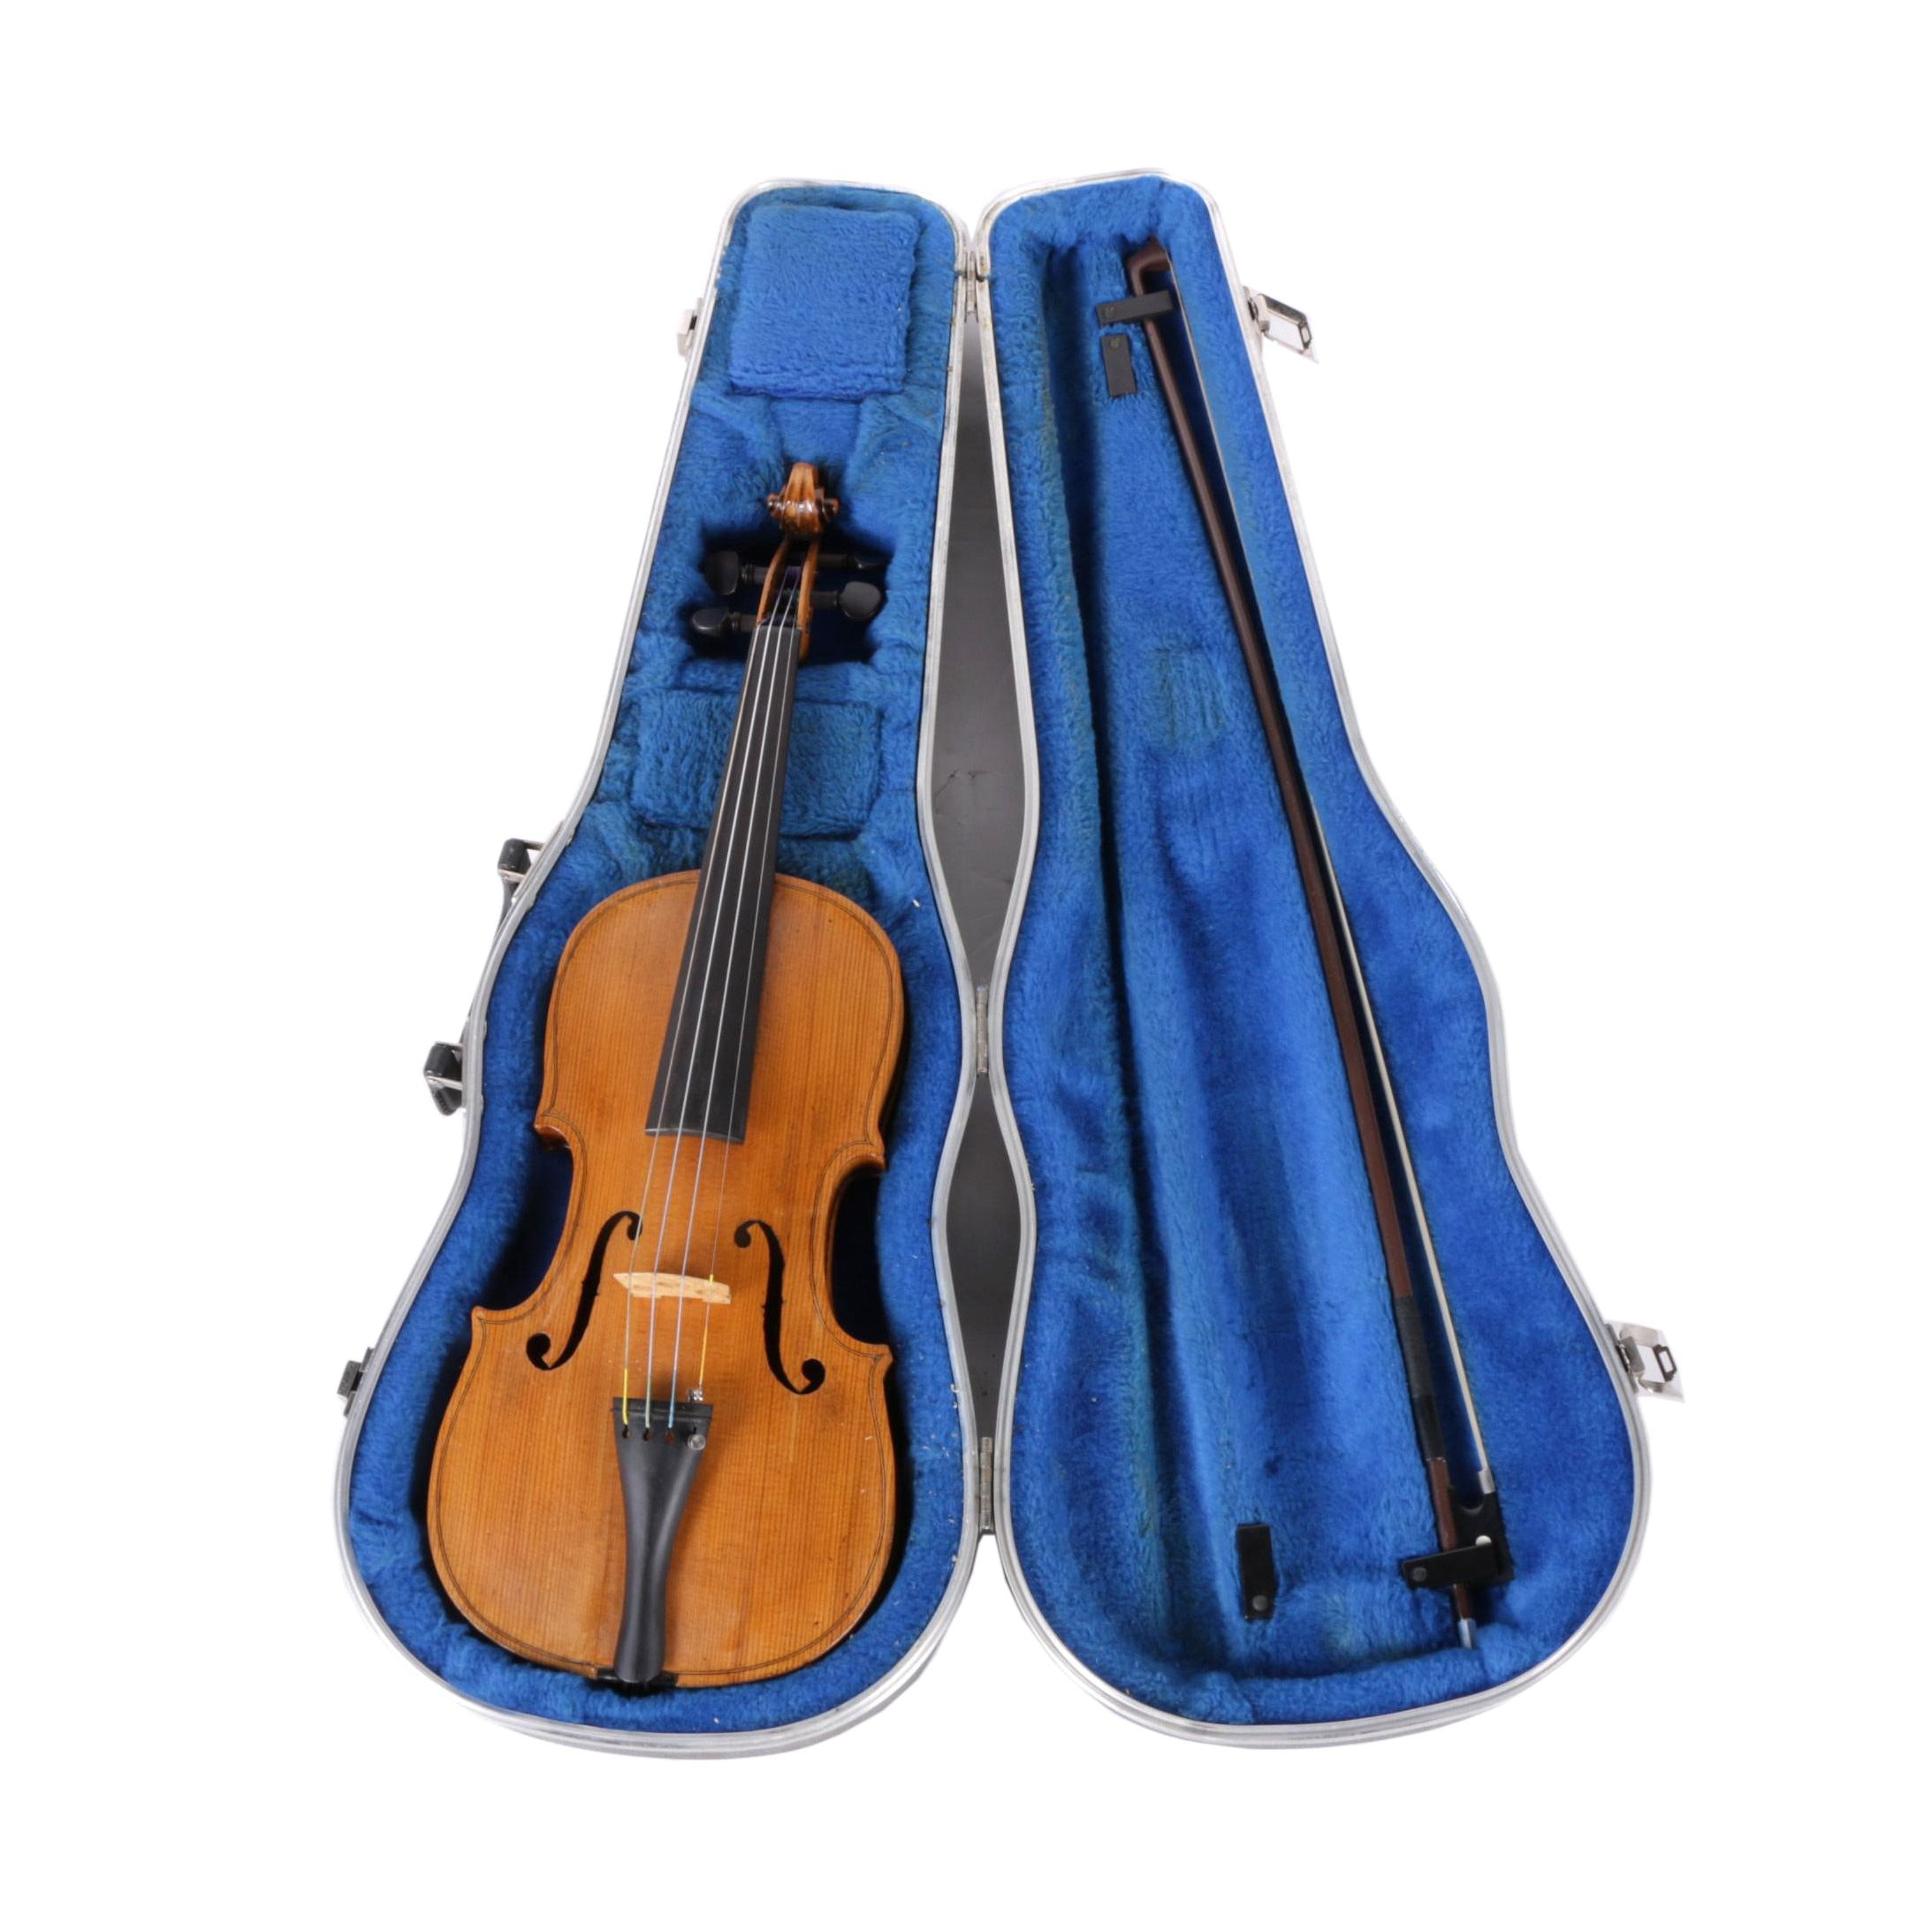 Schoenbach 4/4 Violin Outfit